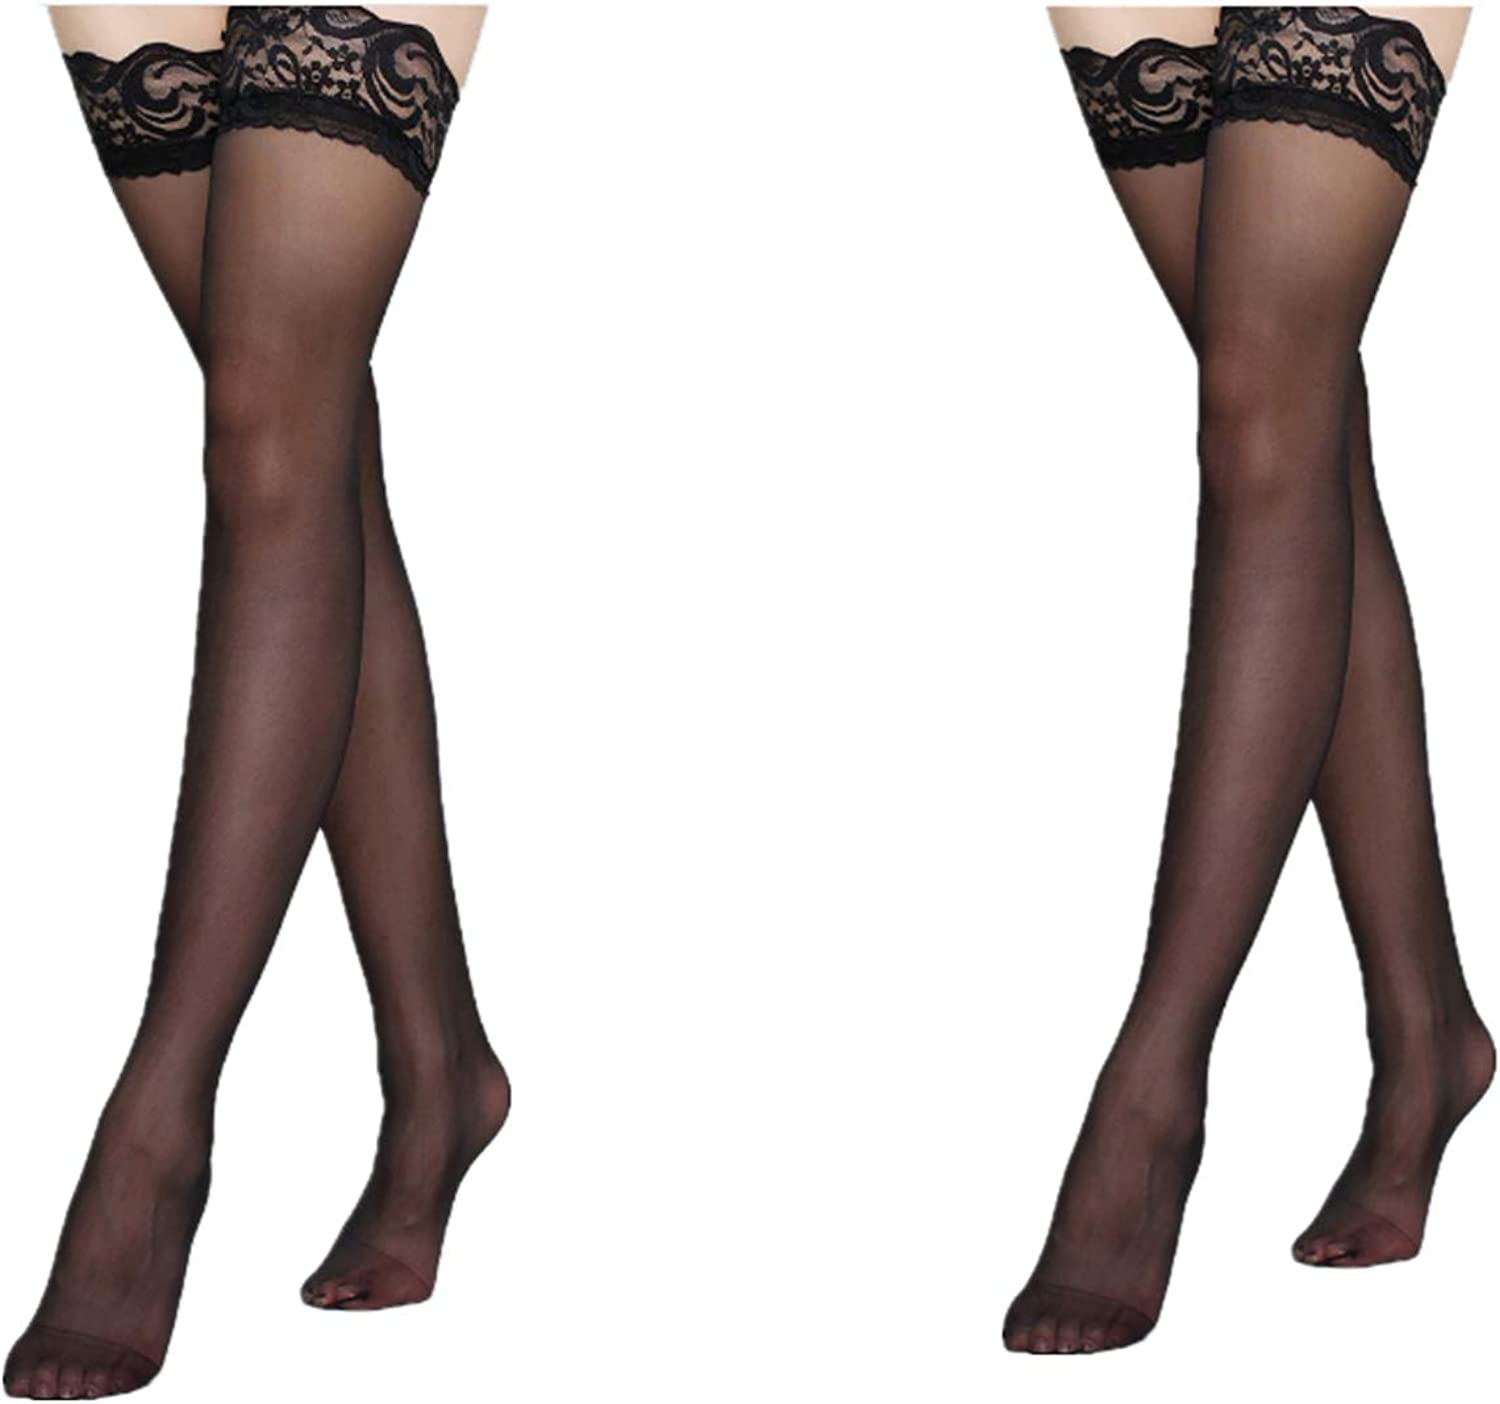 Women Thigh-Highs Stockings Hold Up Lace Top Nylon Fashion Garter Belt Suspender